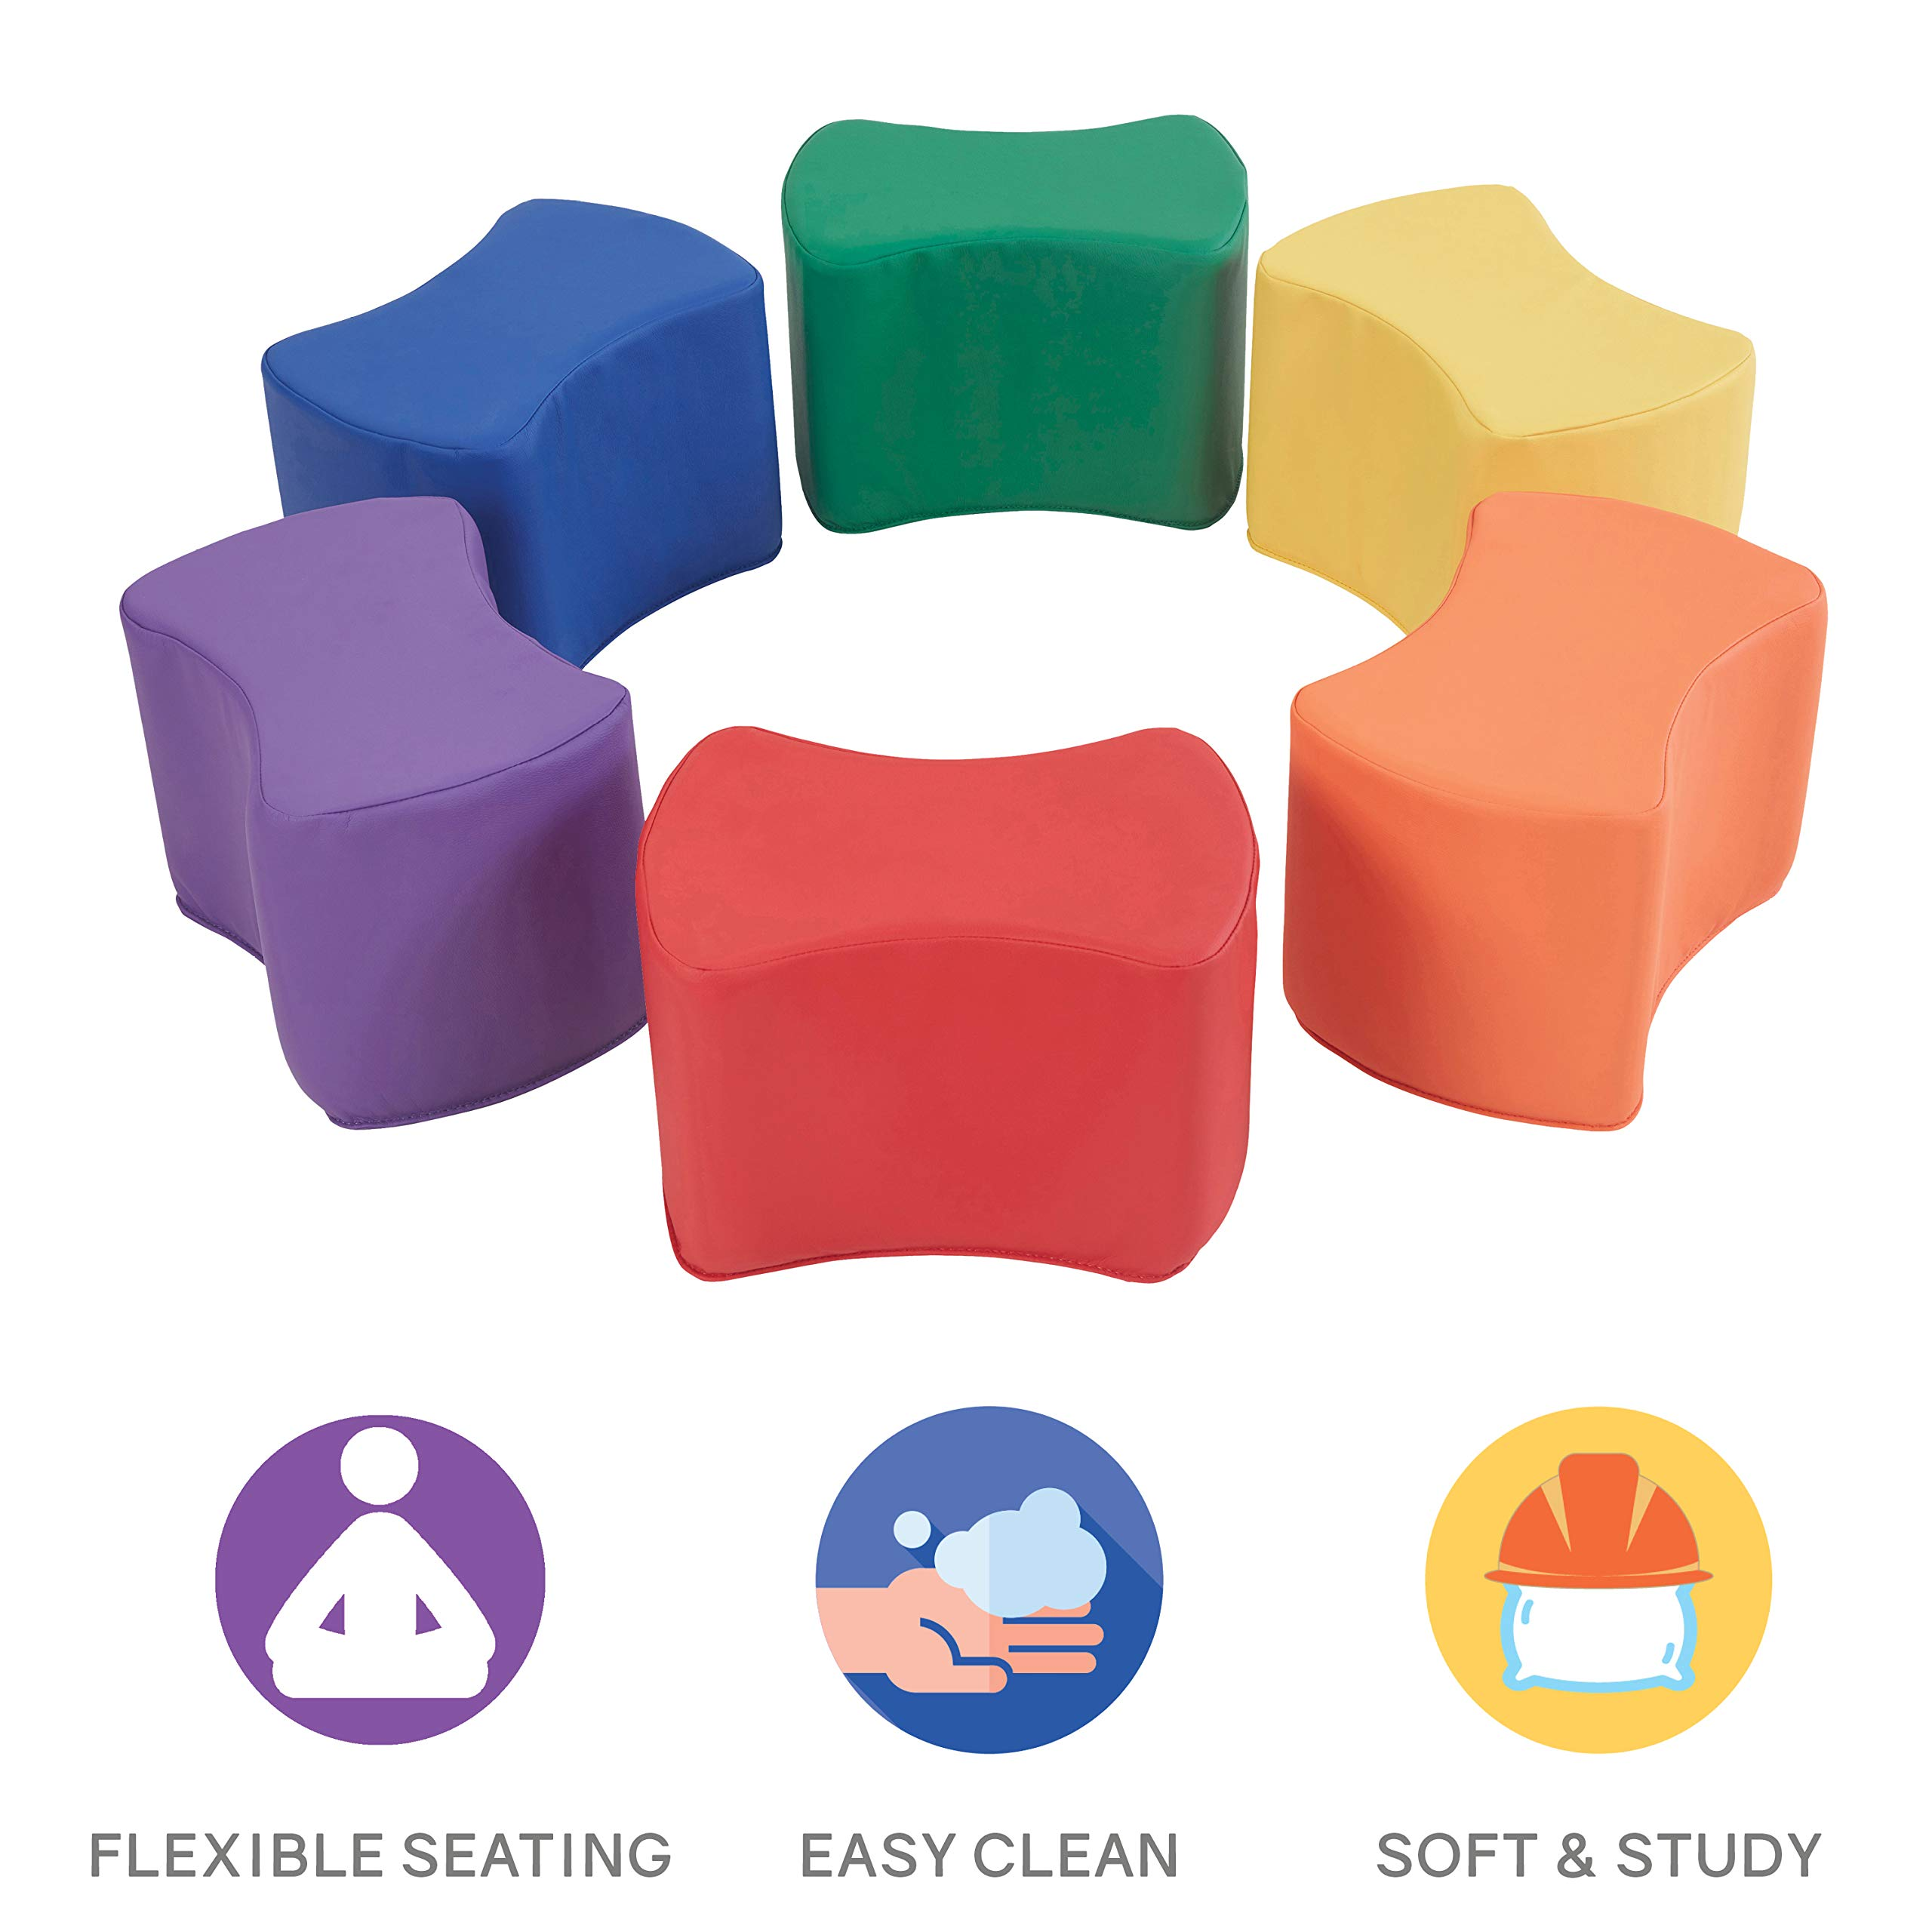 FDP SoftScape Butterfly Stool Modular Seating Set for Toddlers and Kids, Colorful Flexible Seating for Classrooms and Daycares (6-Piece Set) - Assorted by Factory Direct Partners